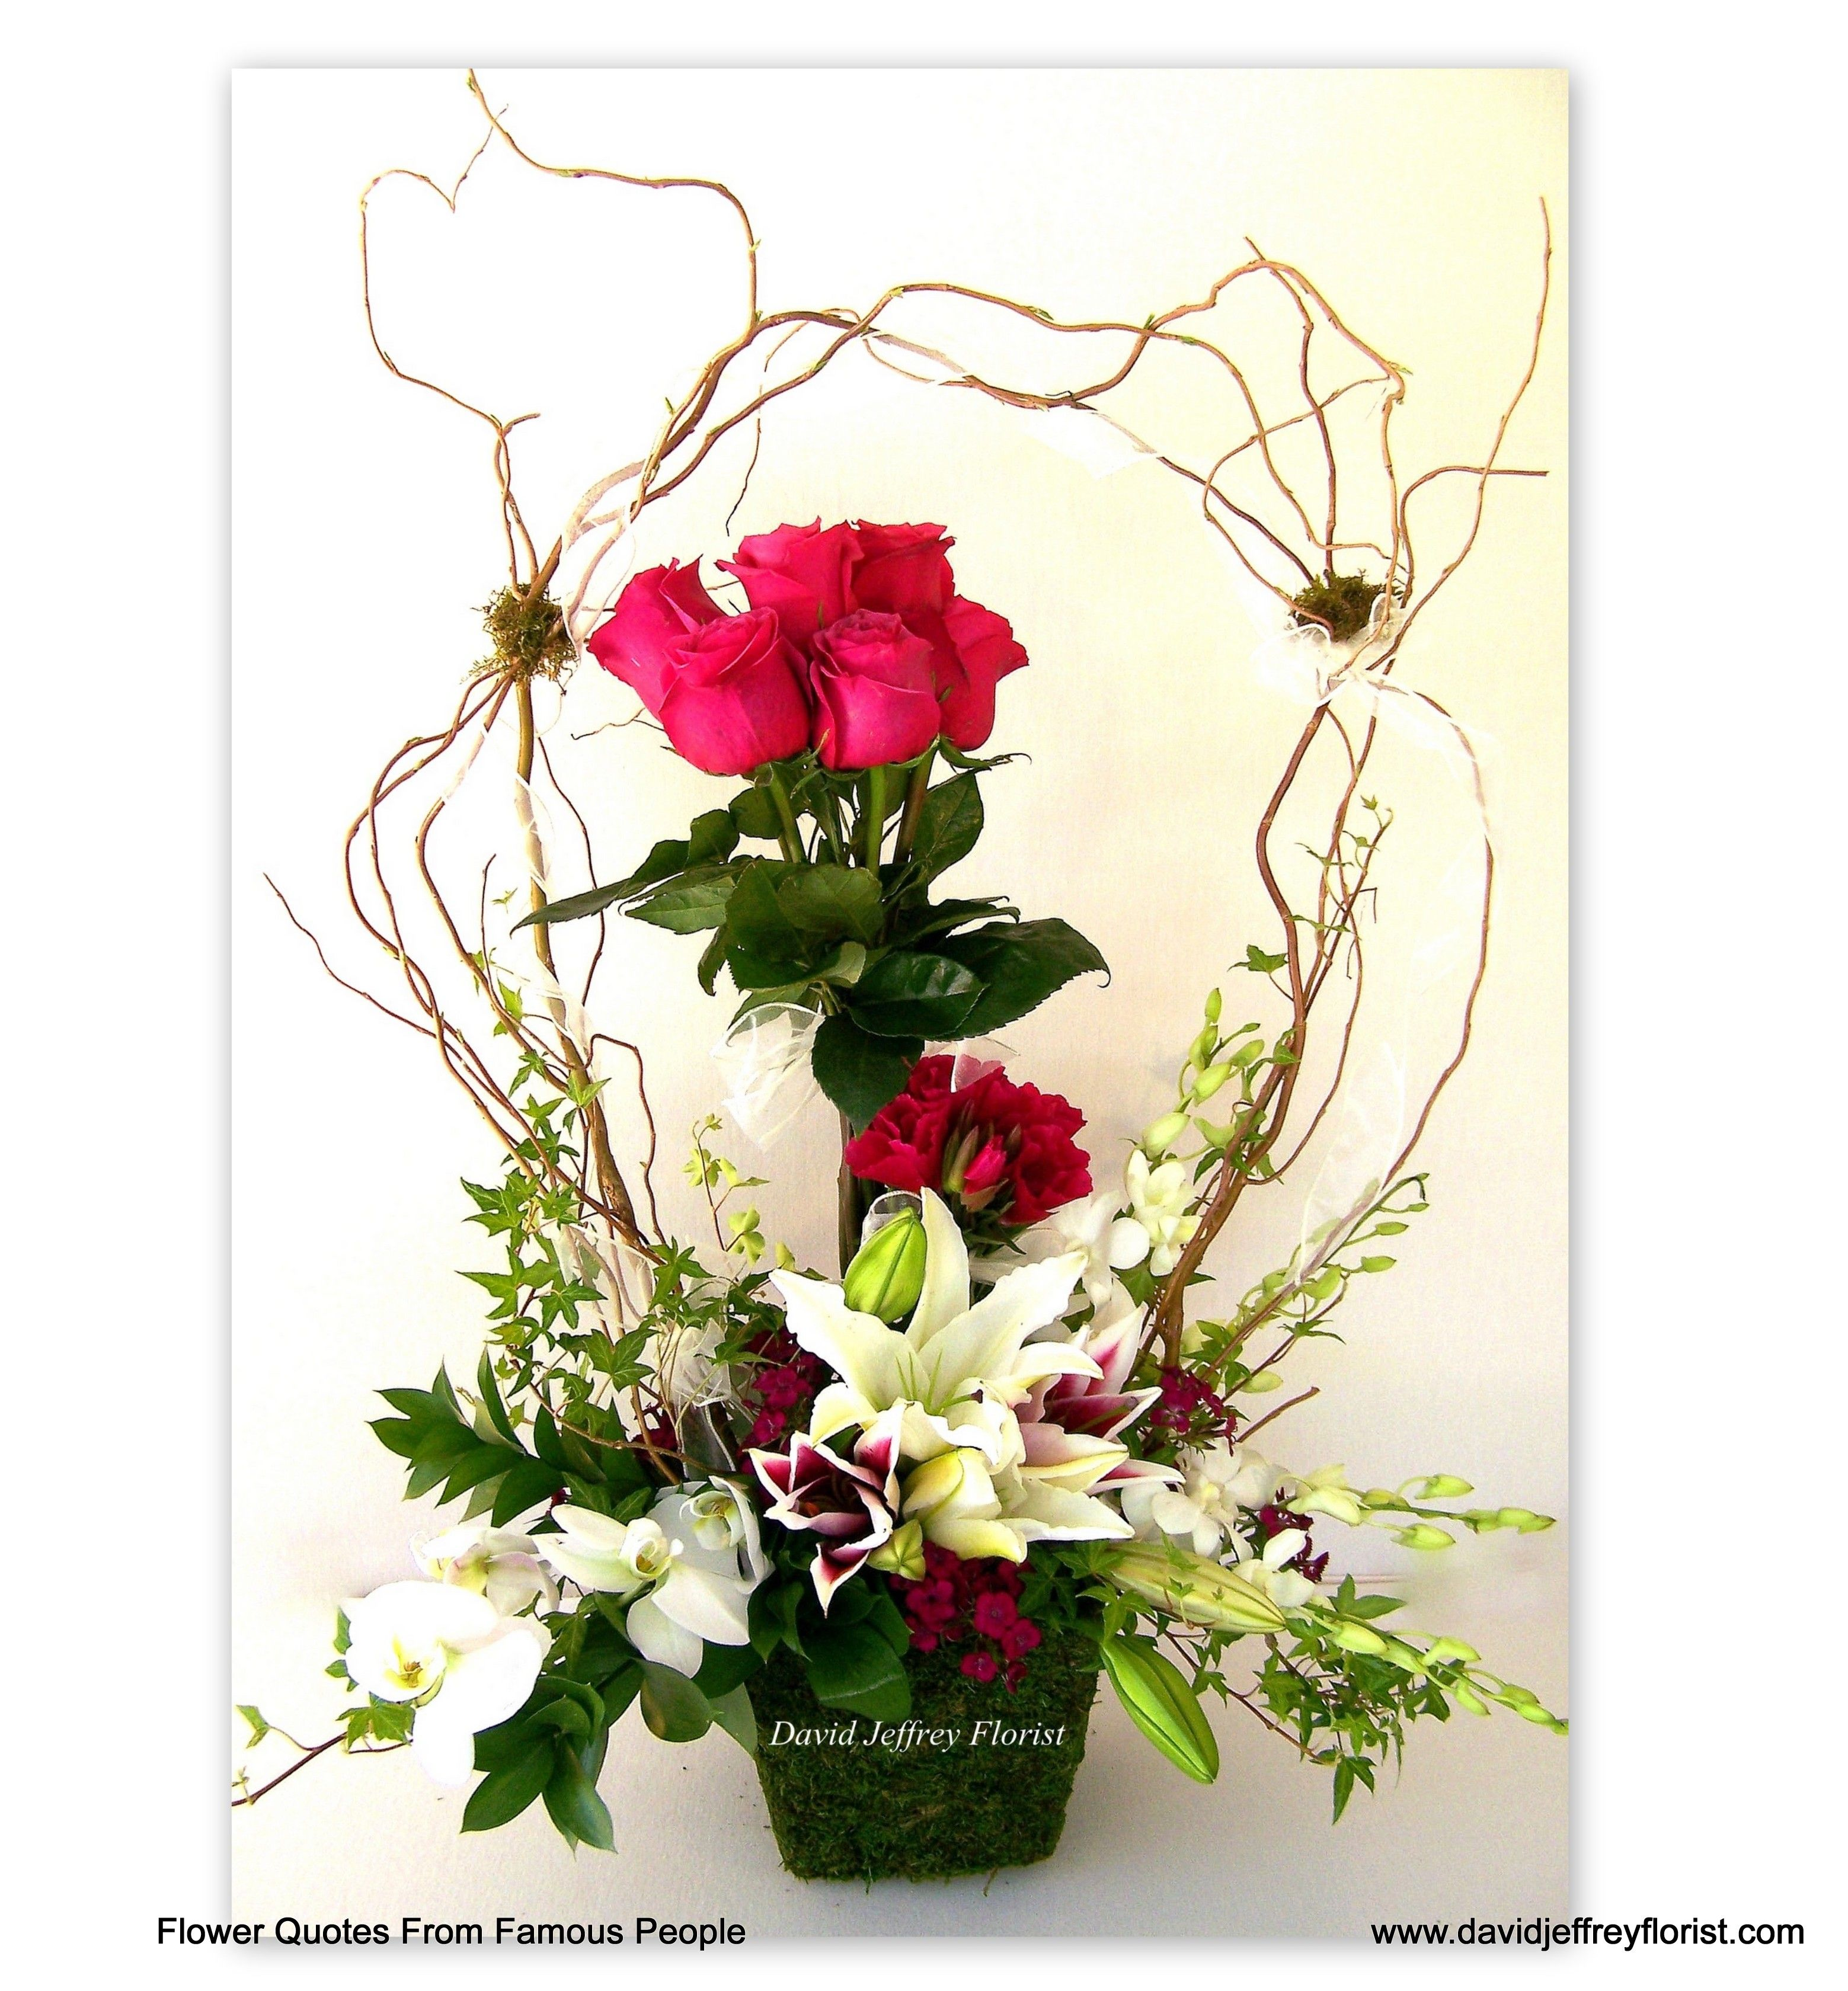 Happy Mother S Day From David Jeffrey Florist Call 805 376 2500 To Place Your Order Happymothersday Order Flowers Online Mothers Day Flowers Spring Flowers